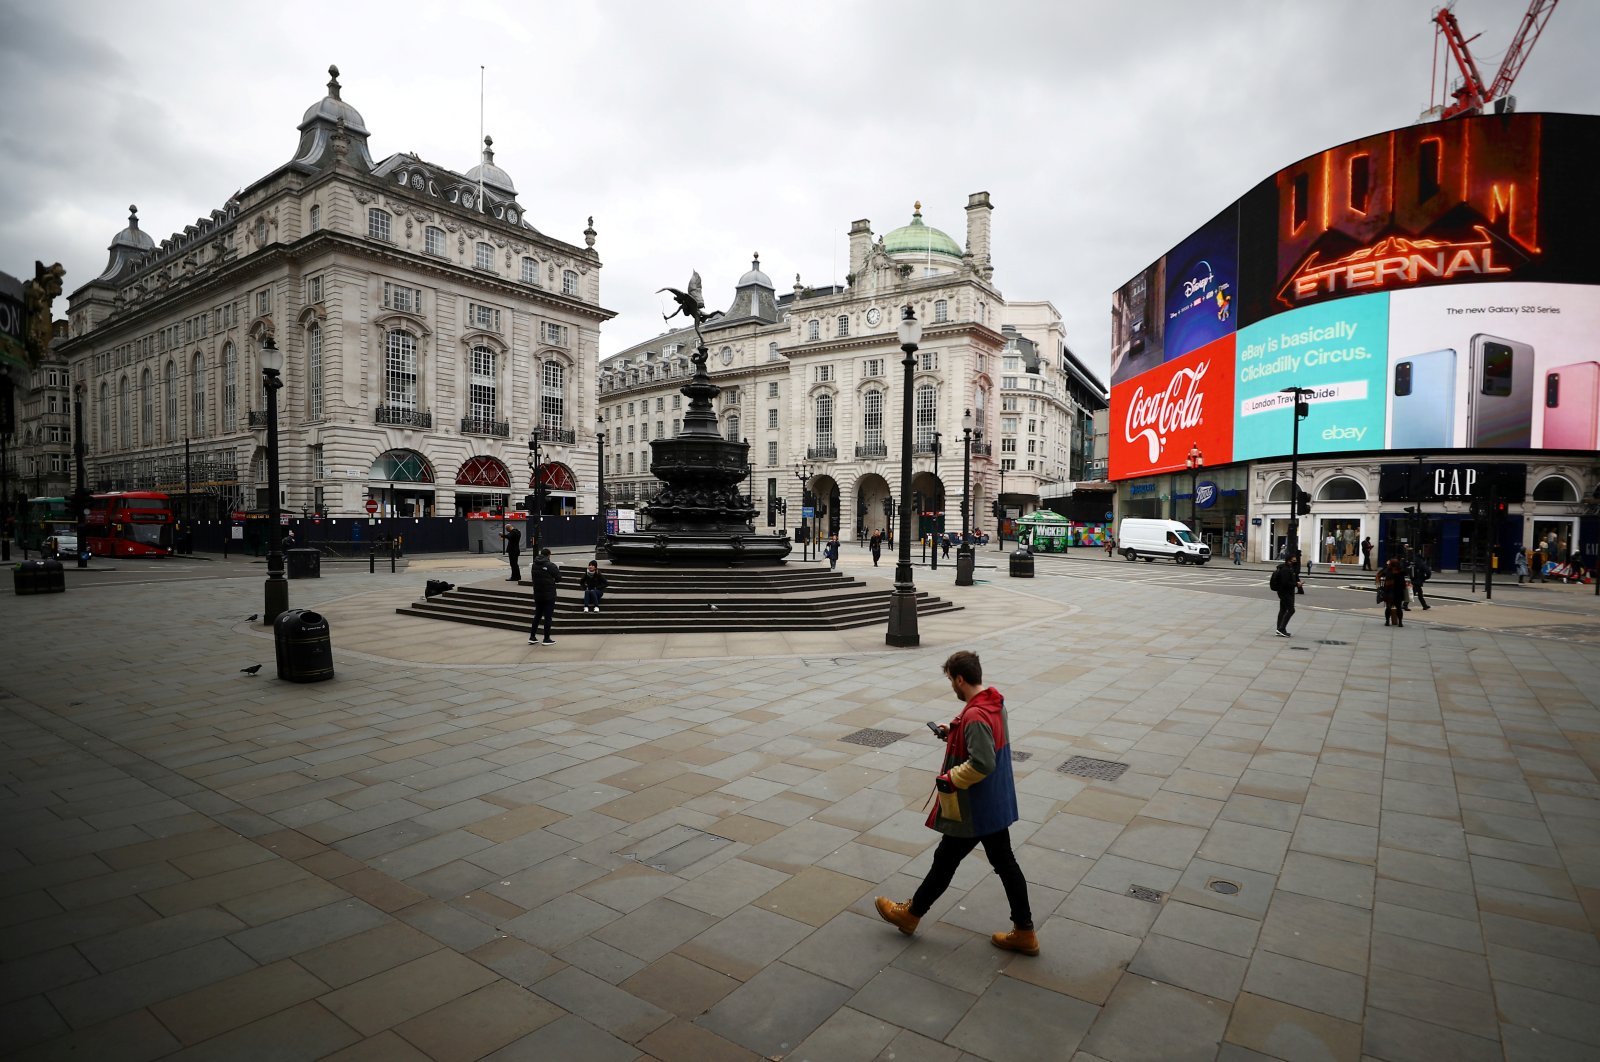 A general view in a deserted Piccadilly Circus as the spread of the coronavirus disease continues, London, Britain, March 20, 2020. (Reuters Photo)